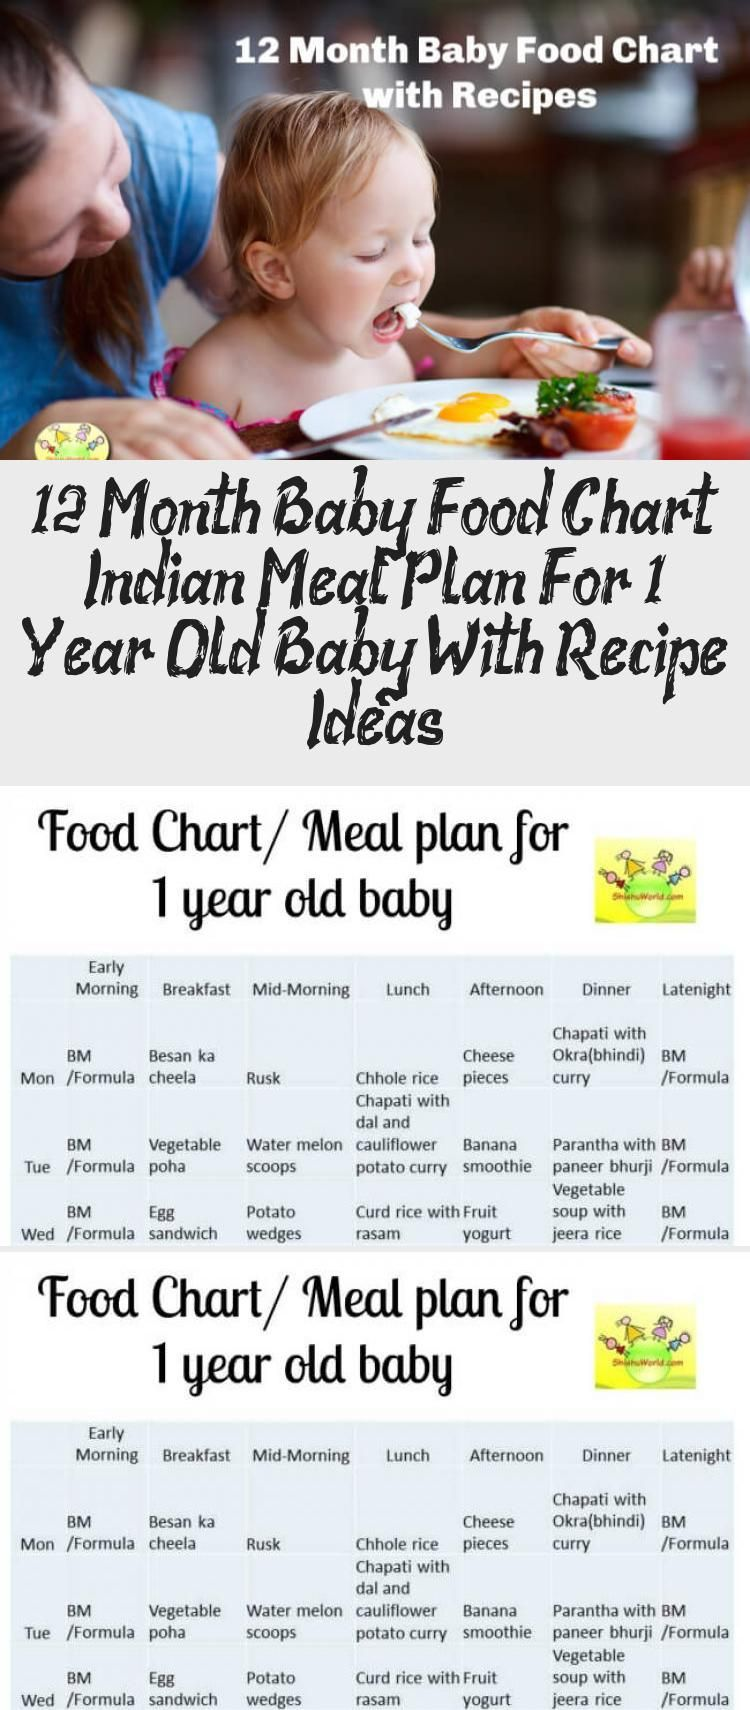 12 Month Baby Food Chart Indian Meal Plan For 1 Year Old Baby With Recipe Ideas In 2020 Baby Food Chart 12 Month Baby Food Baby Food Recipes